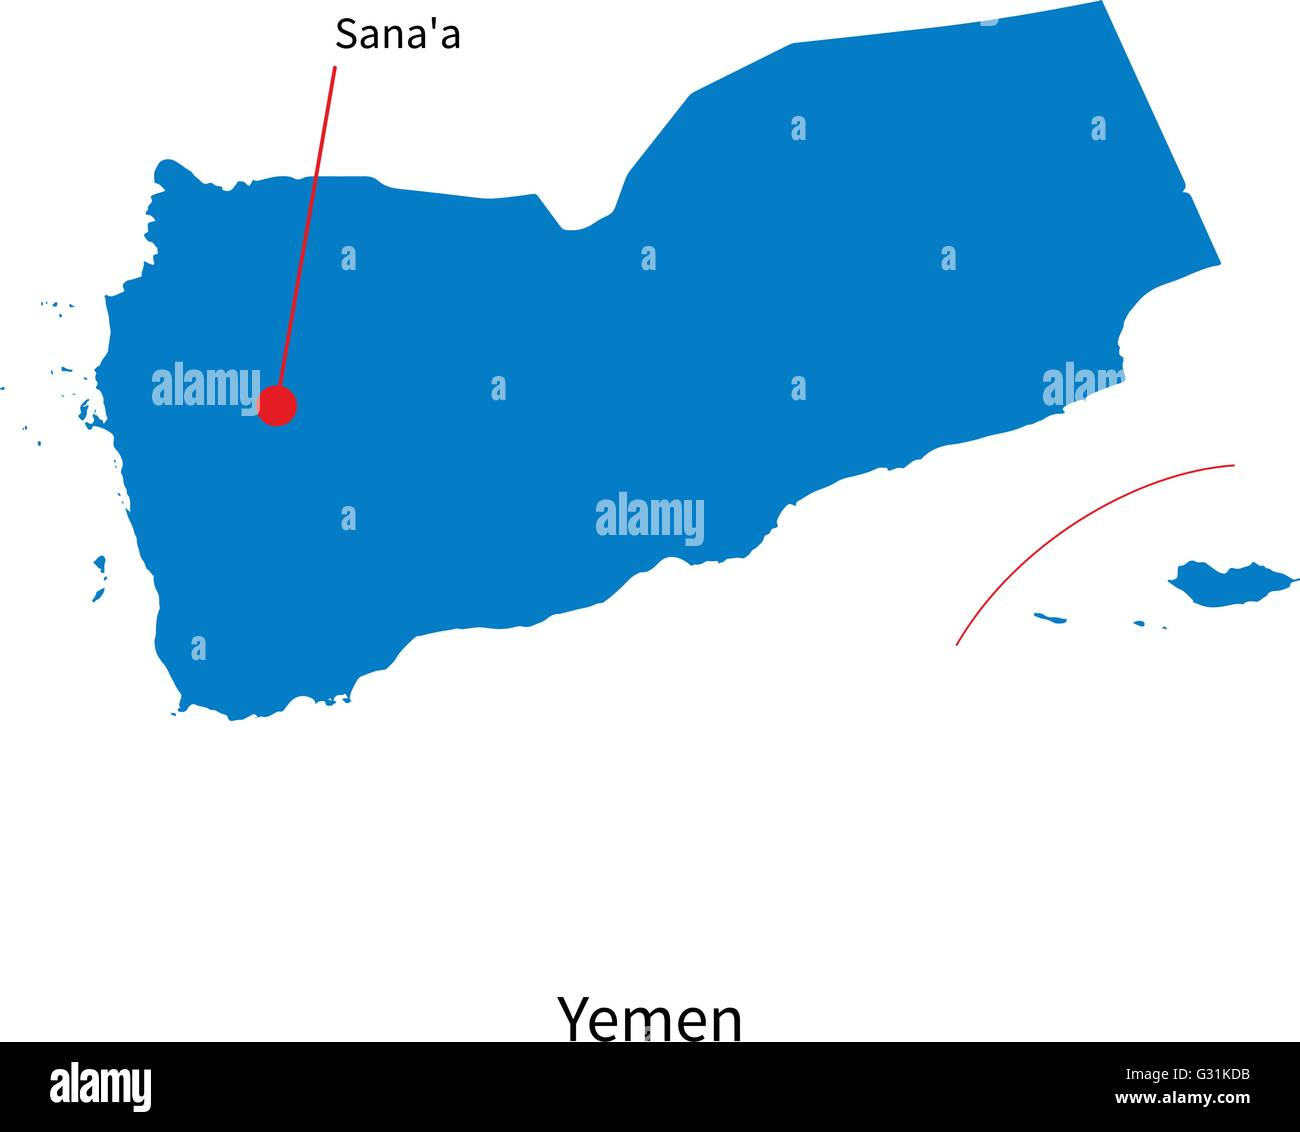 Detailed vector map of Yemen and capital city Sana'a - Stock Vector